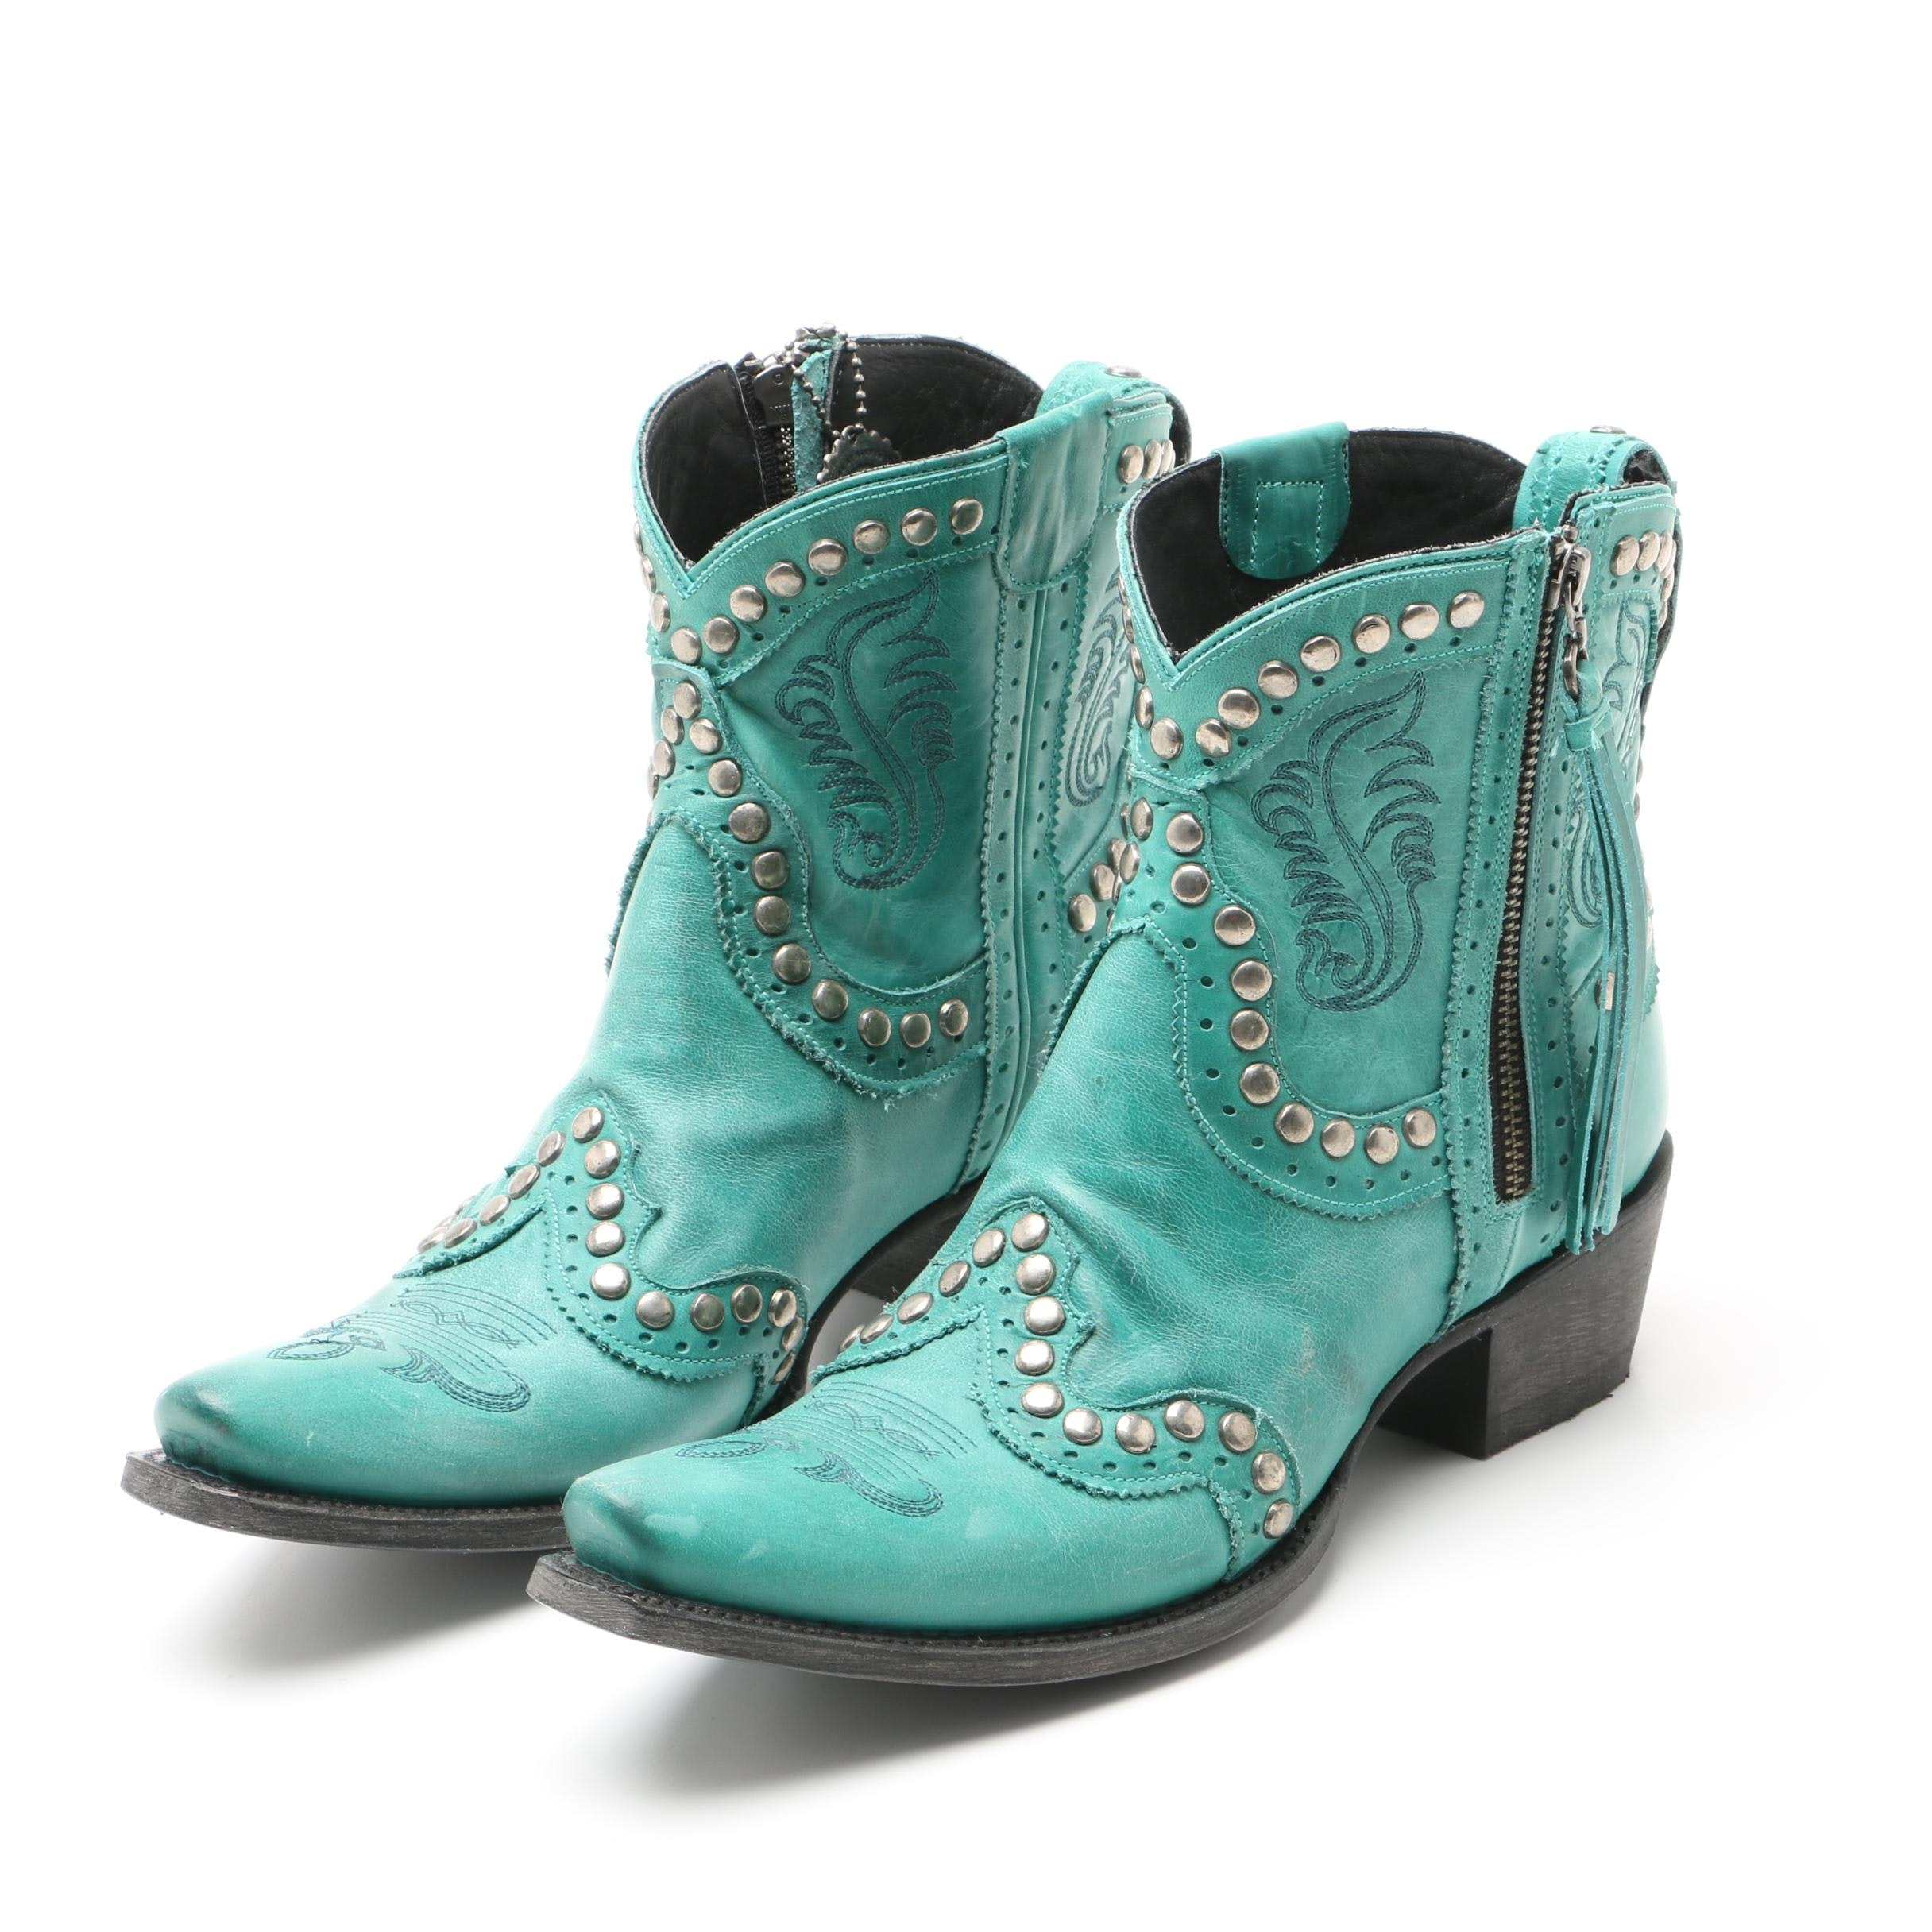 Women's Double D Ranch Garcitas Embellished Half Pint Shorty Boots in Turquoise